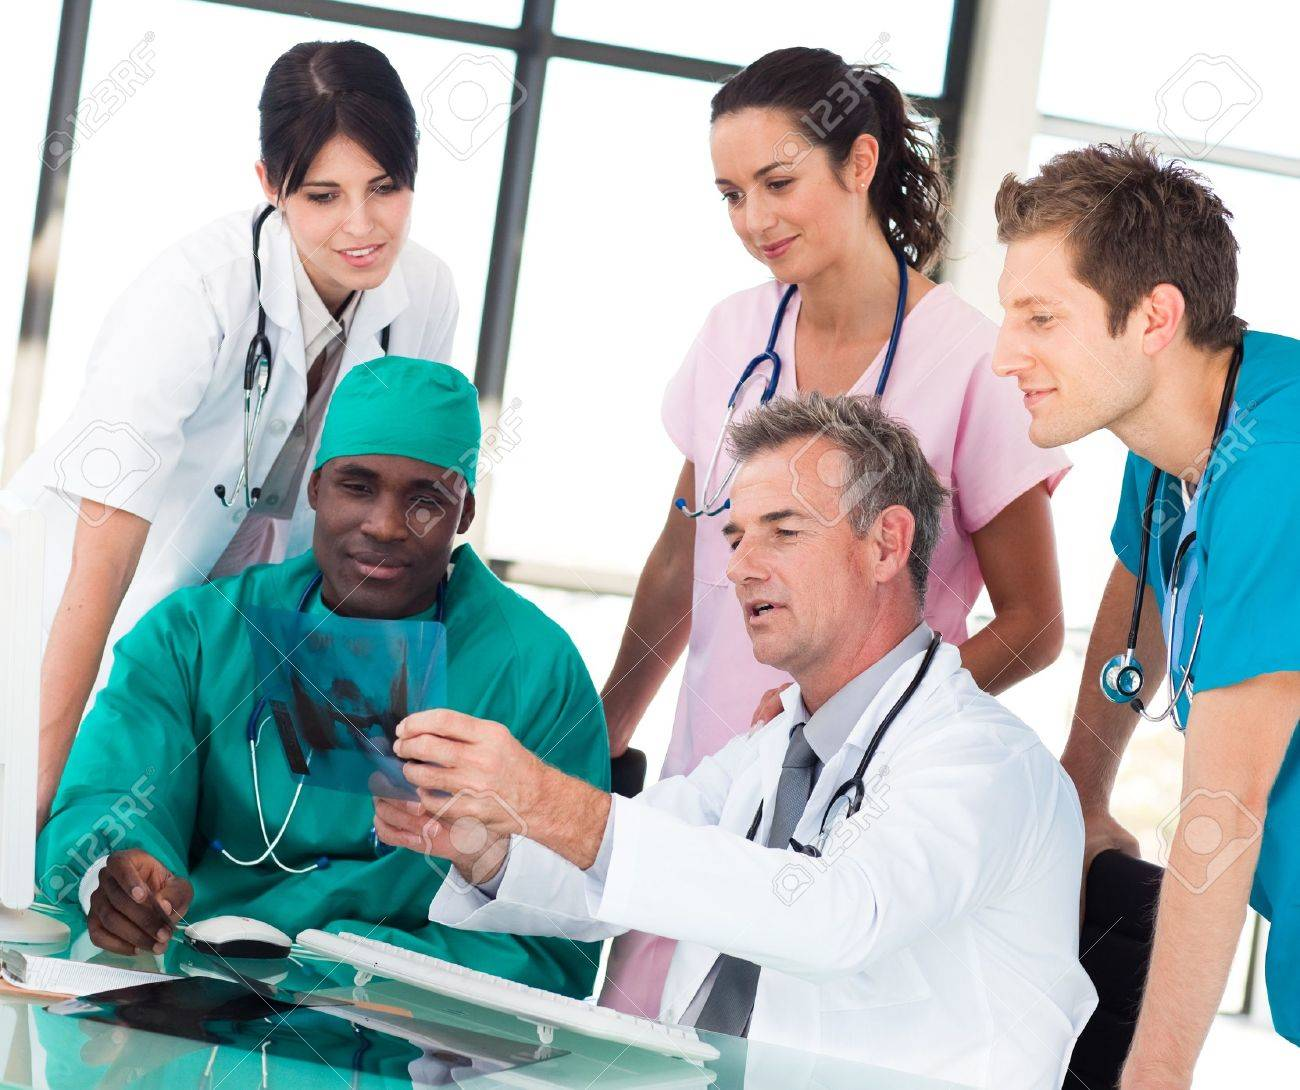 Medical team discussing in an office Stock Photo - 10111205